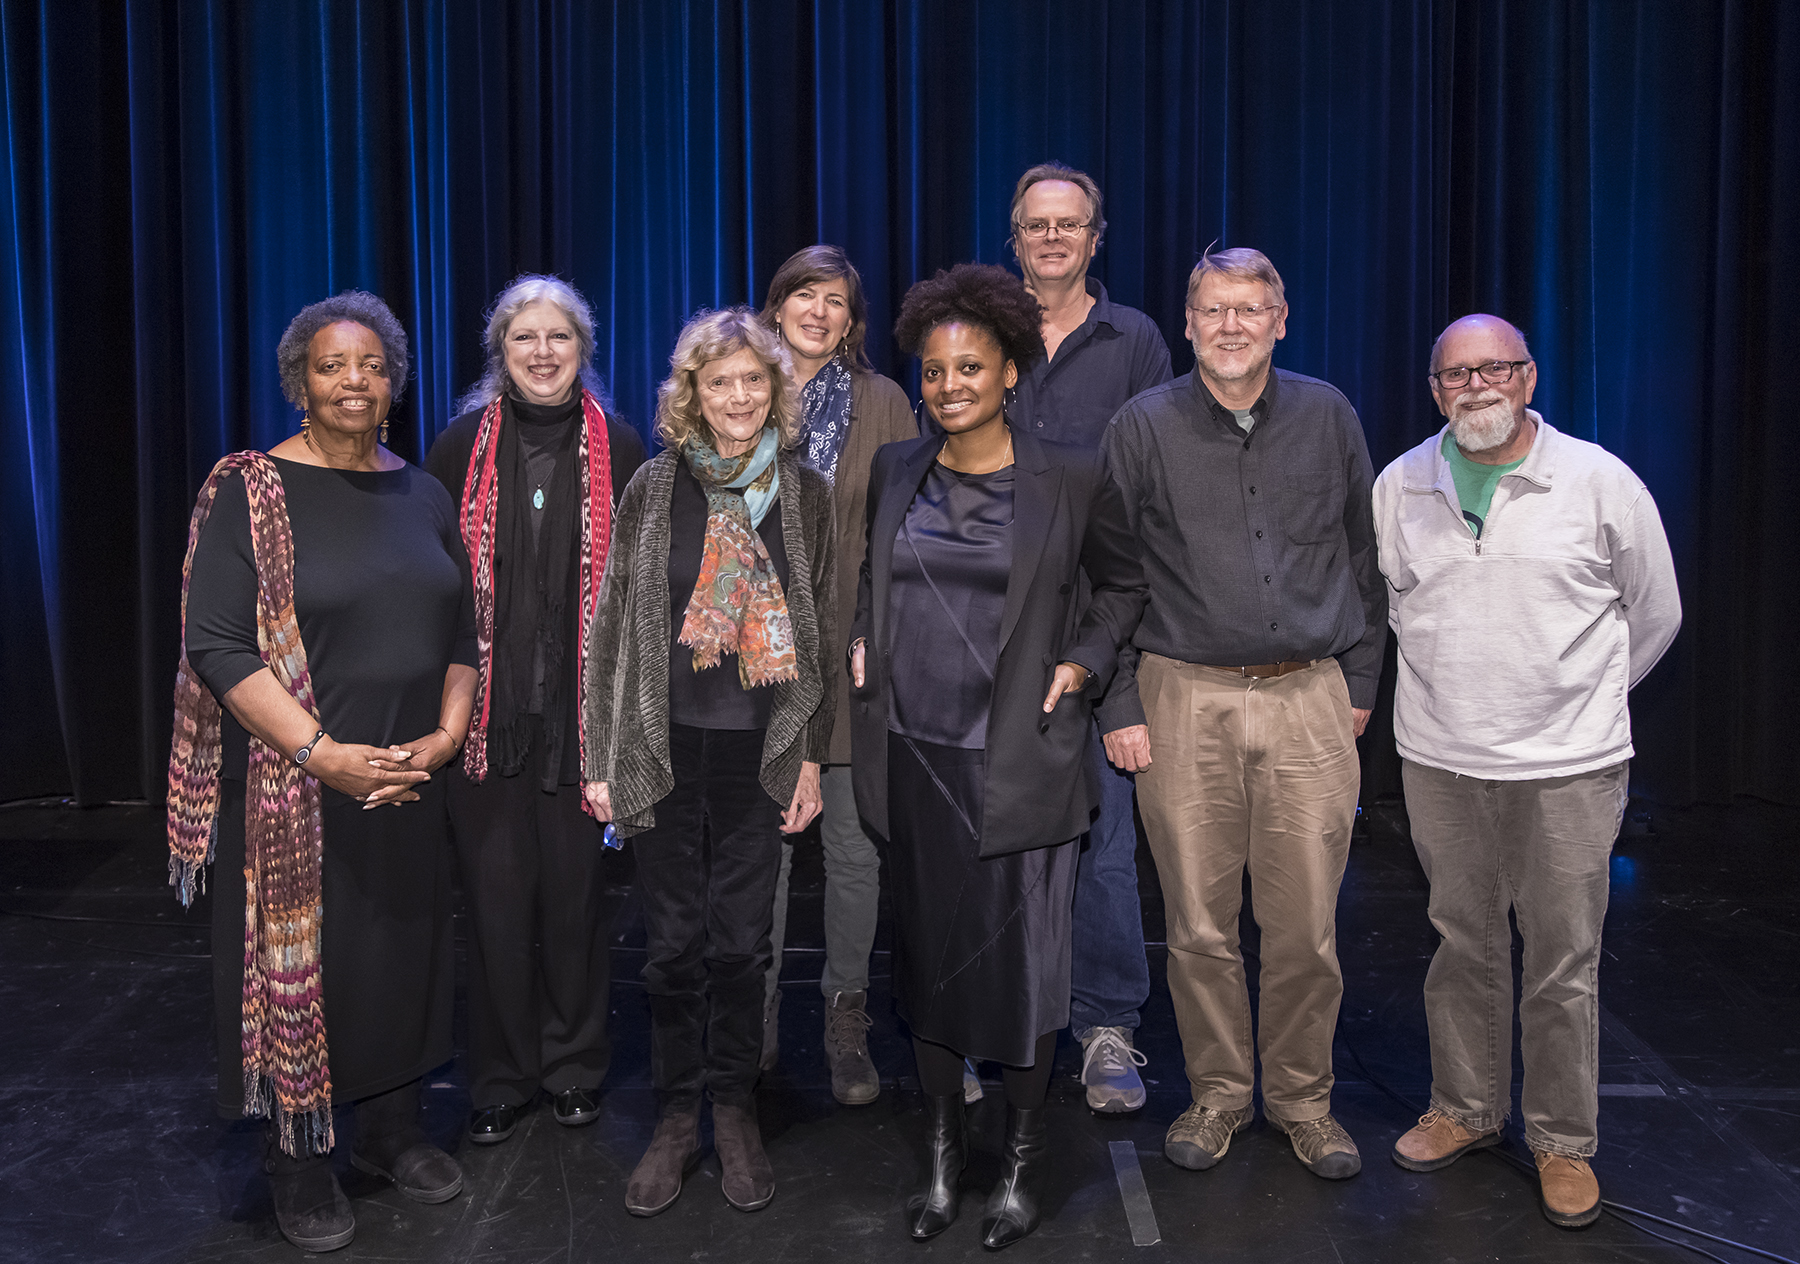 Image by David Bazemore  Left to right: Sojourner Kincaid Rolle, Santa Barbara Poet Laureate; Enid Osborn, Santa Barbara Poet Laureate (current); Perie Longo, Santa Barbara Poet Laureate; Chryss Yost, Santa Barbara Poet Laureate; Tracy K. Smith, United States Poet Laureate (current); David Starkey, Santa Barbara Poet Laureate; Paul Willis, Santa Barbara Poet Laureate and Phil Taggart, Ventura County Poet Laureate (current).